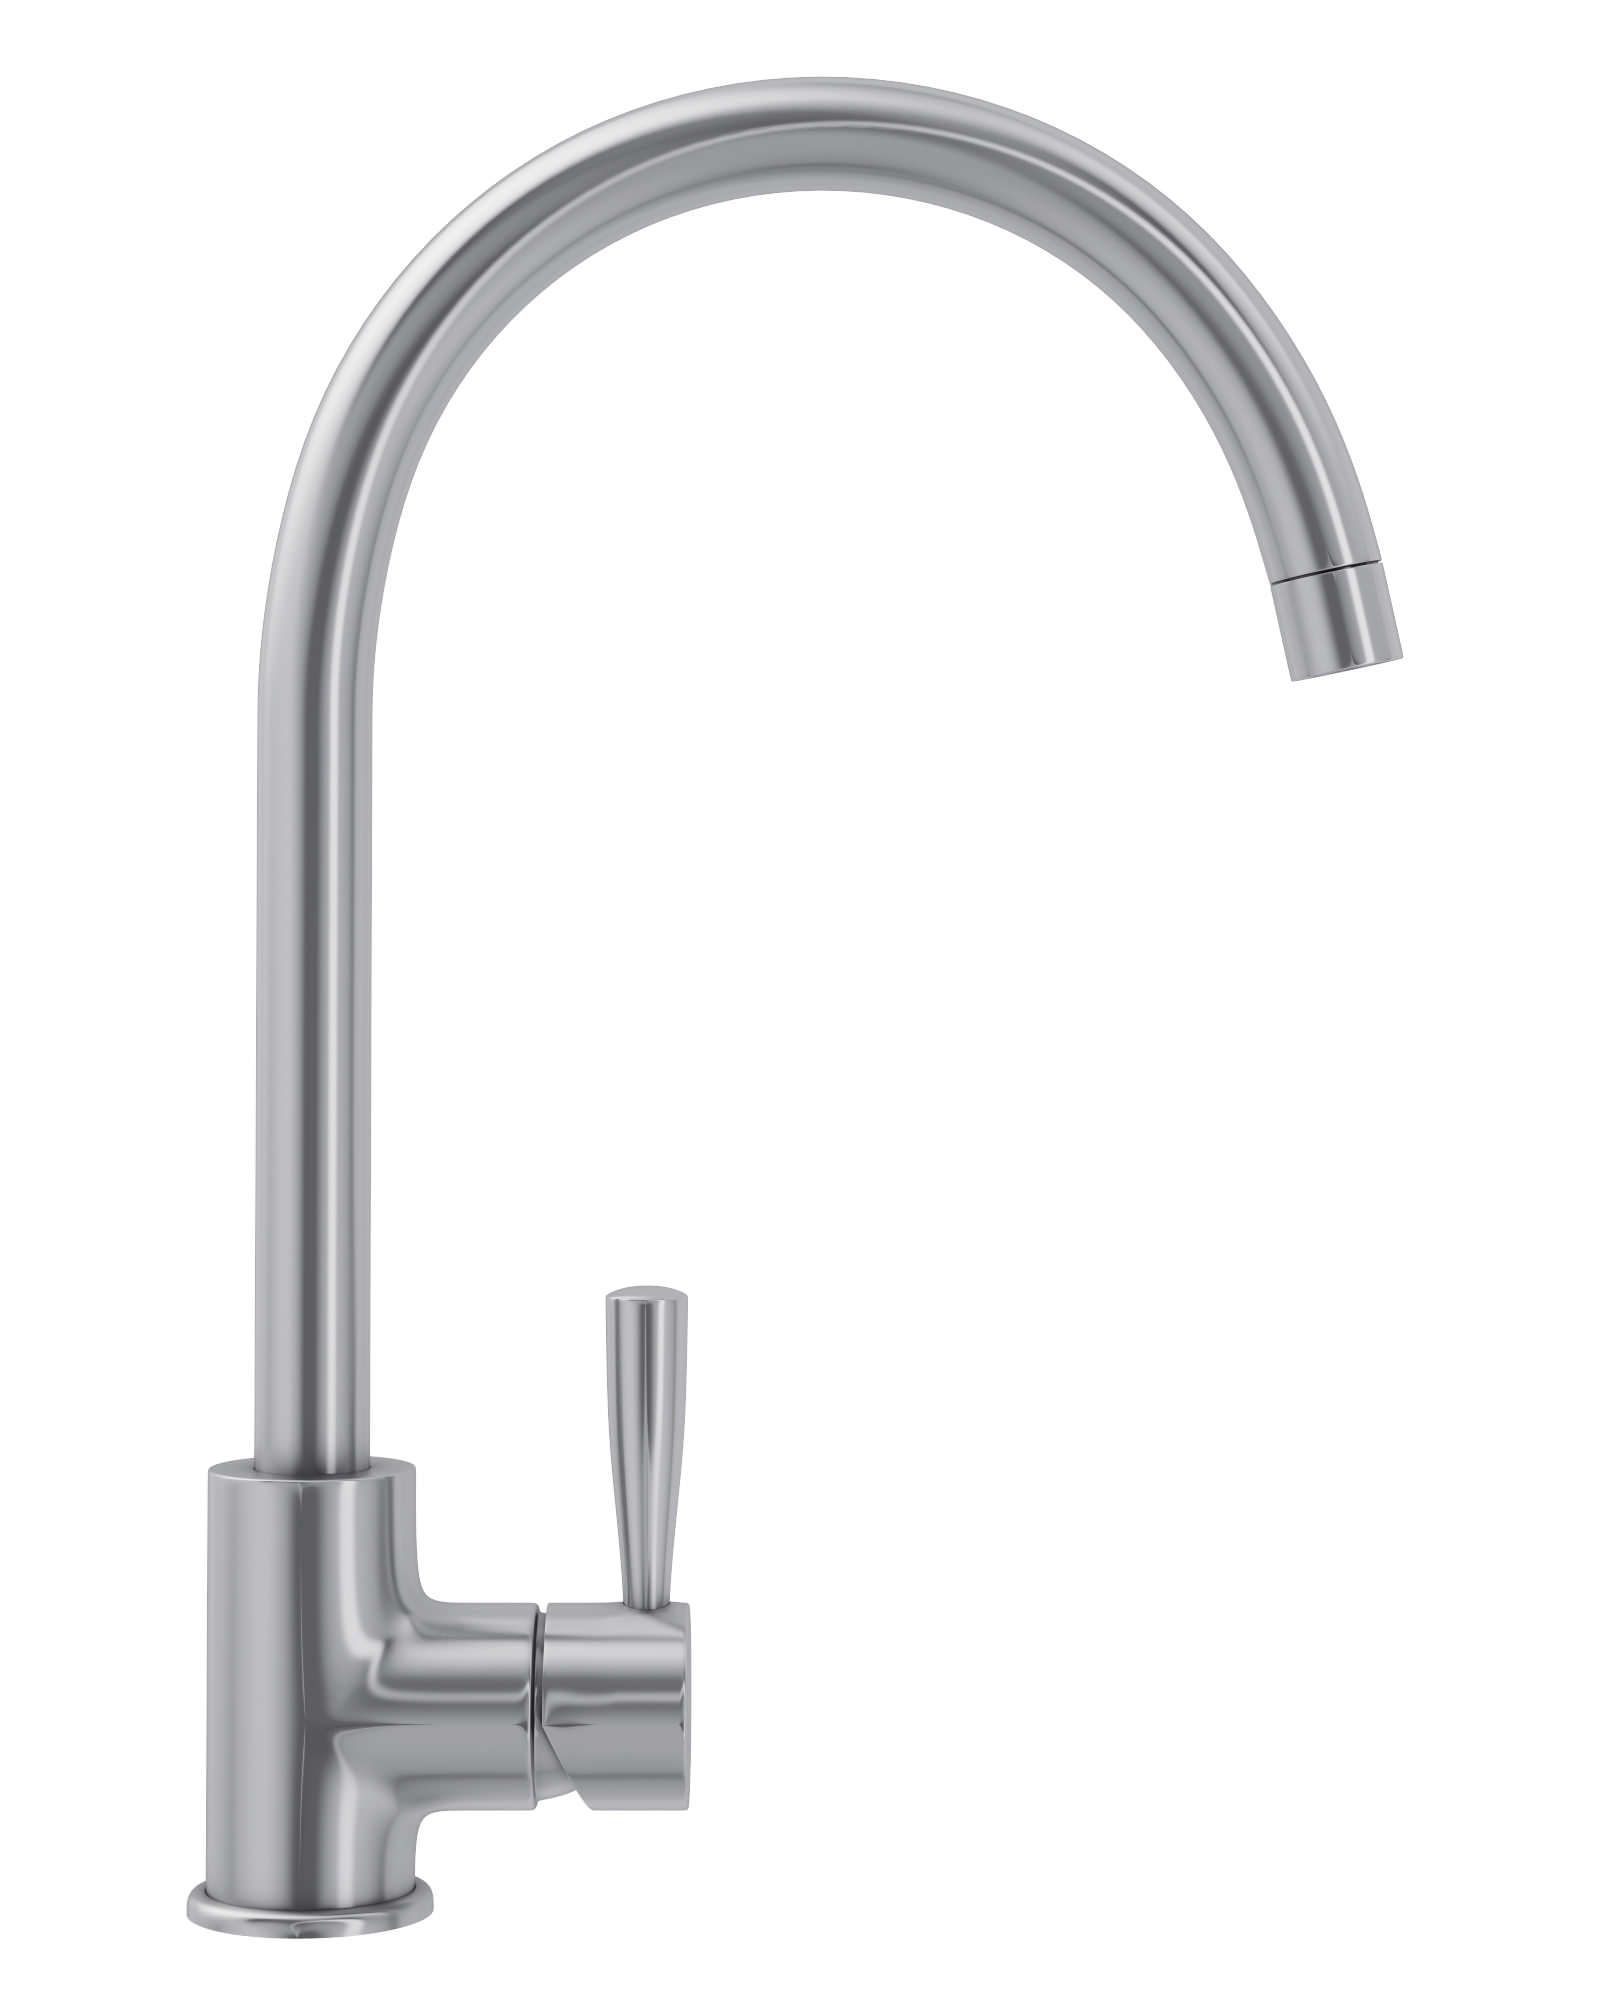 Franke Kitchen Mixer : ... taps kitchen mixer taps franke fuji kitchen sink mixer tap silksteel